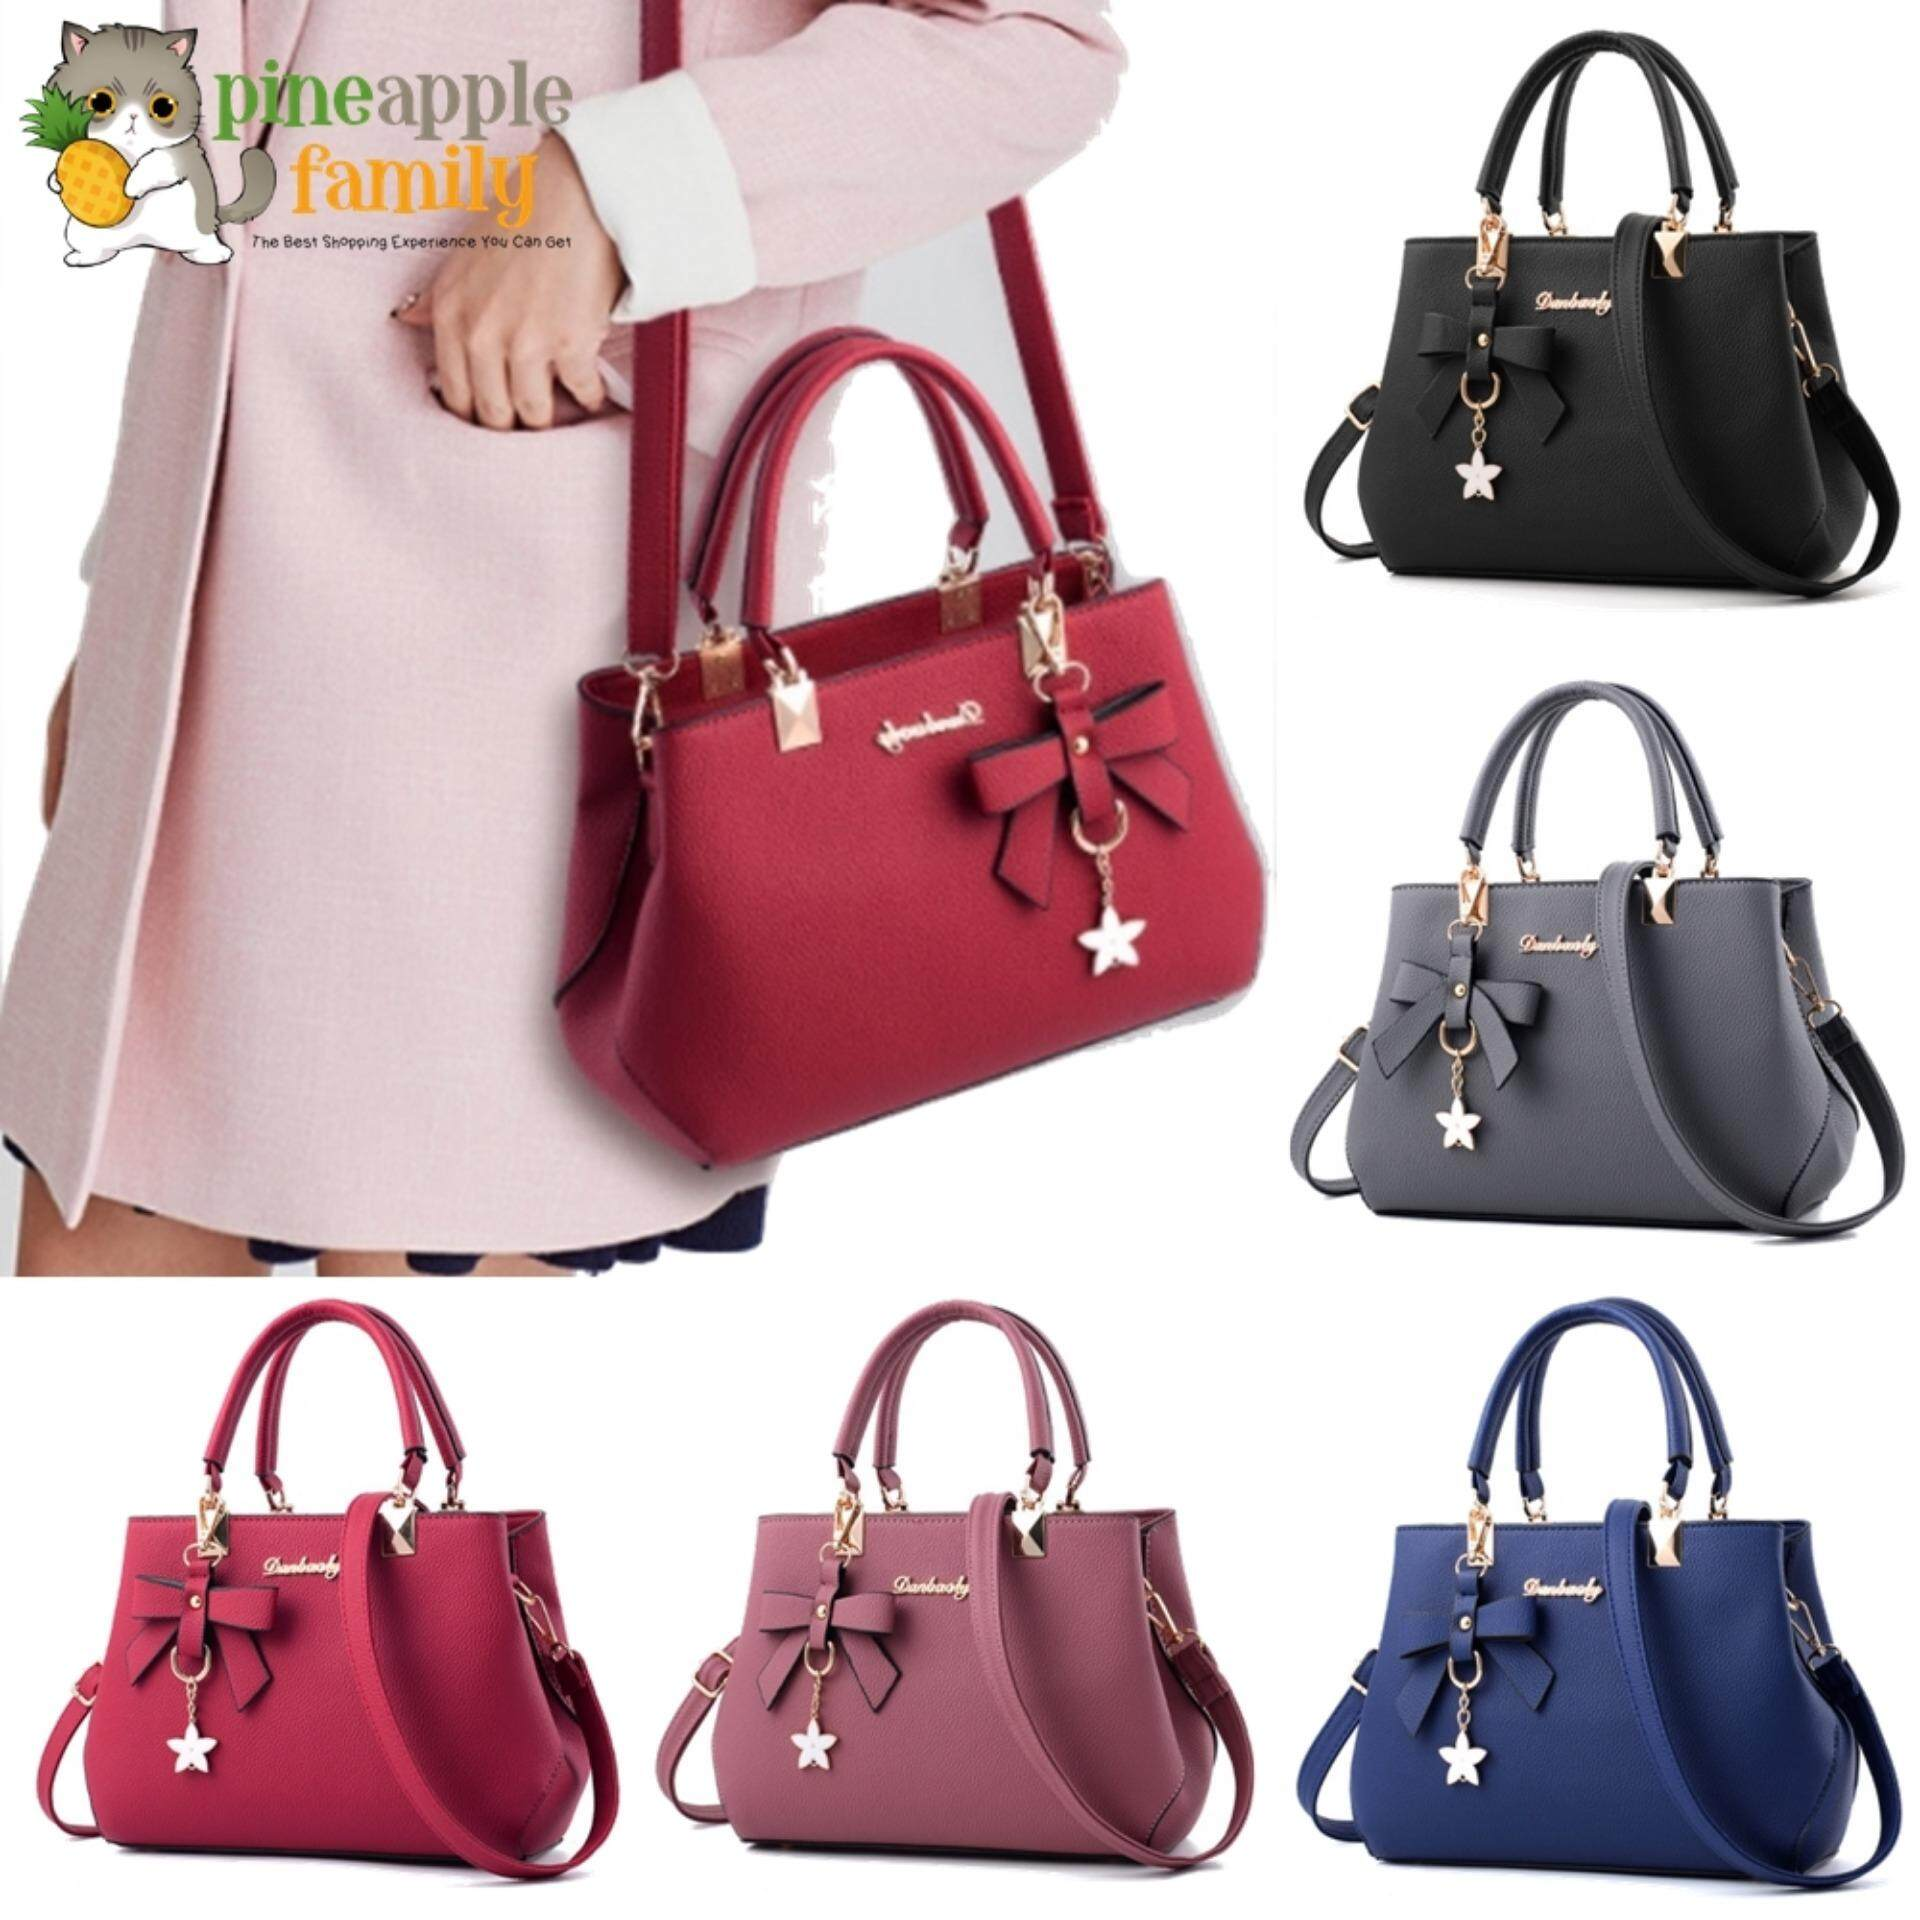 2508524f5c Latest Women s Bags Only on Lazada Malaysia!